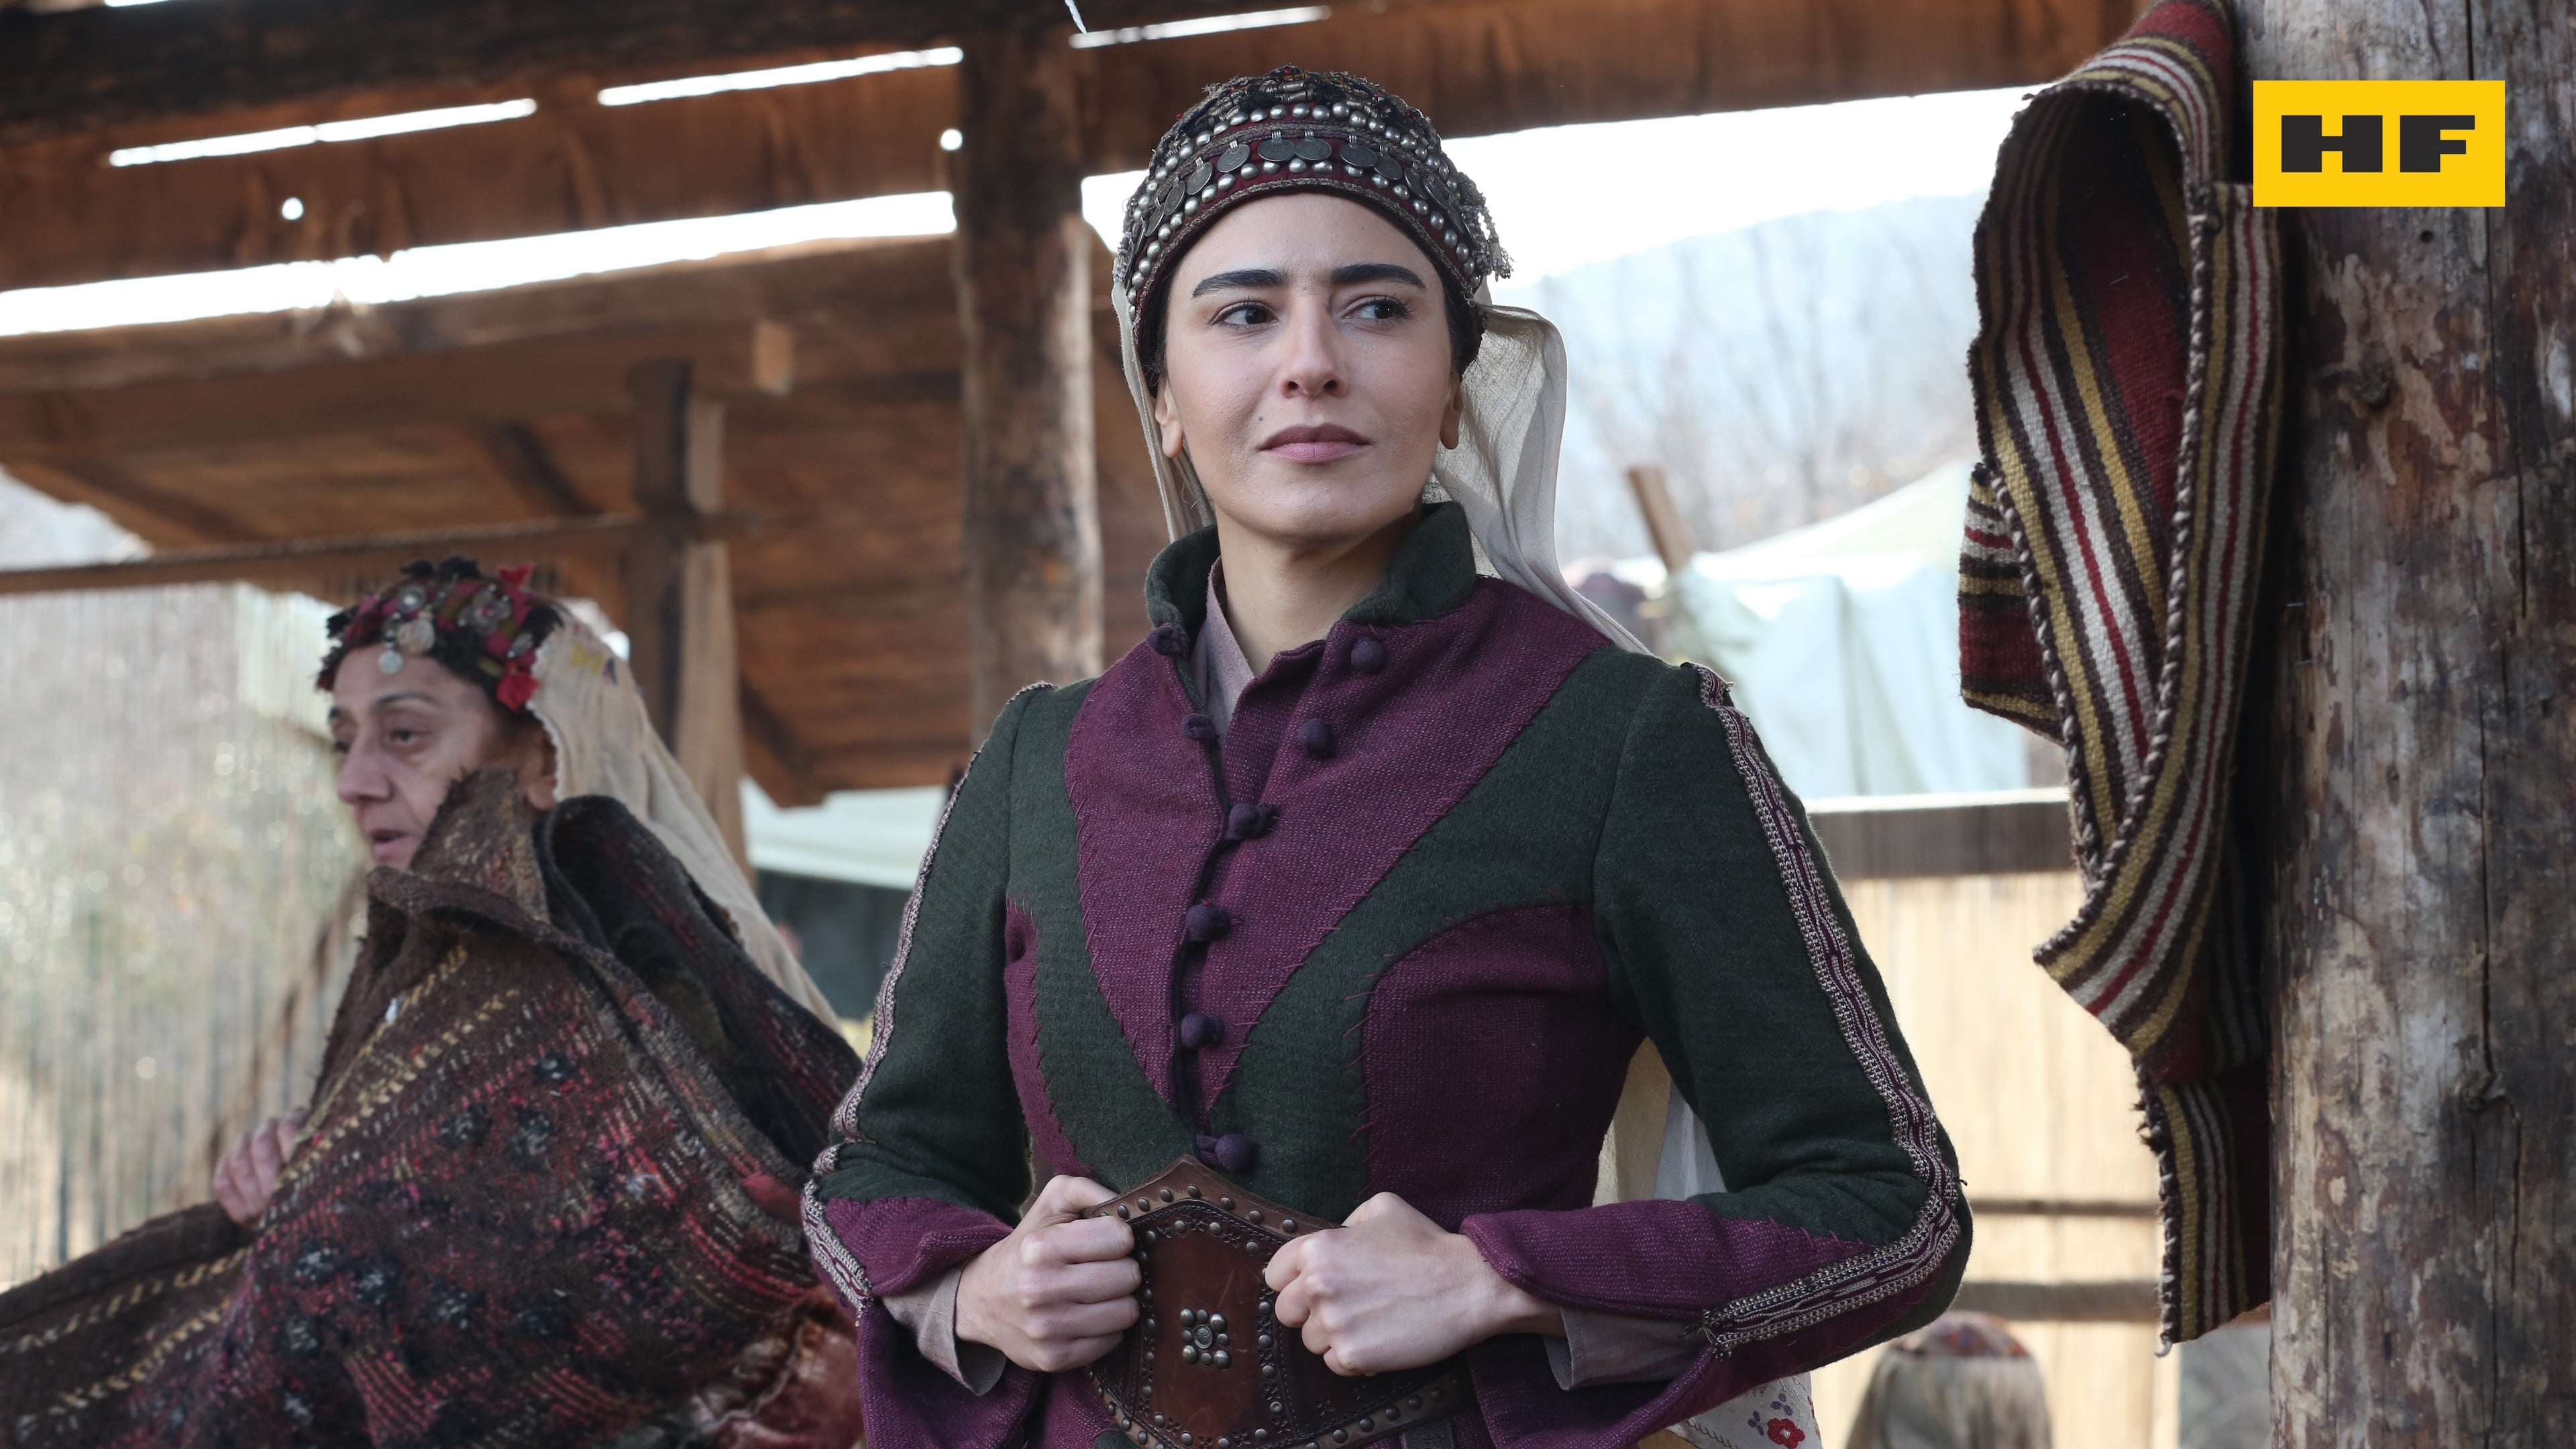 Dirilis Ertugrul Season 3 Episode 12